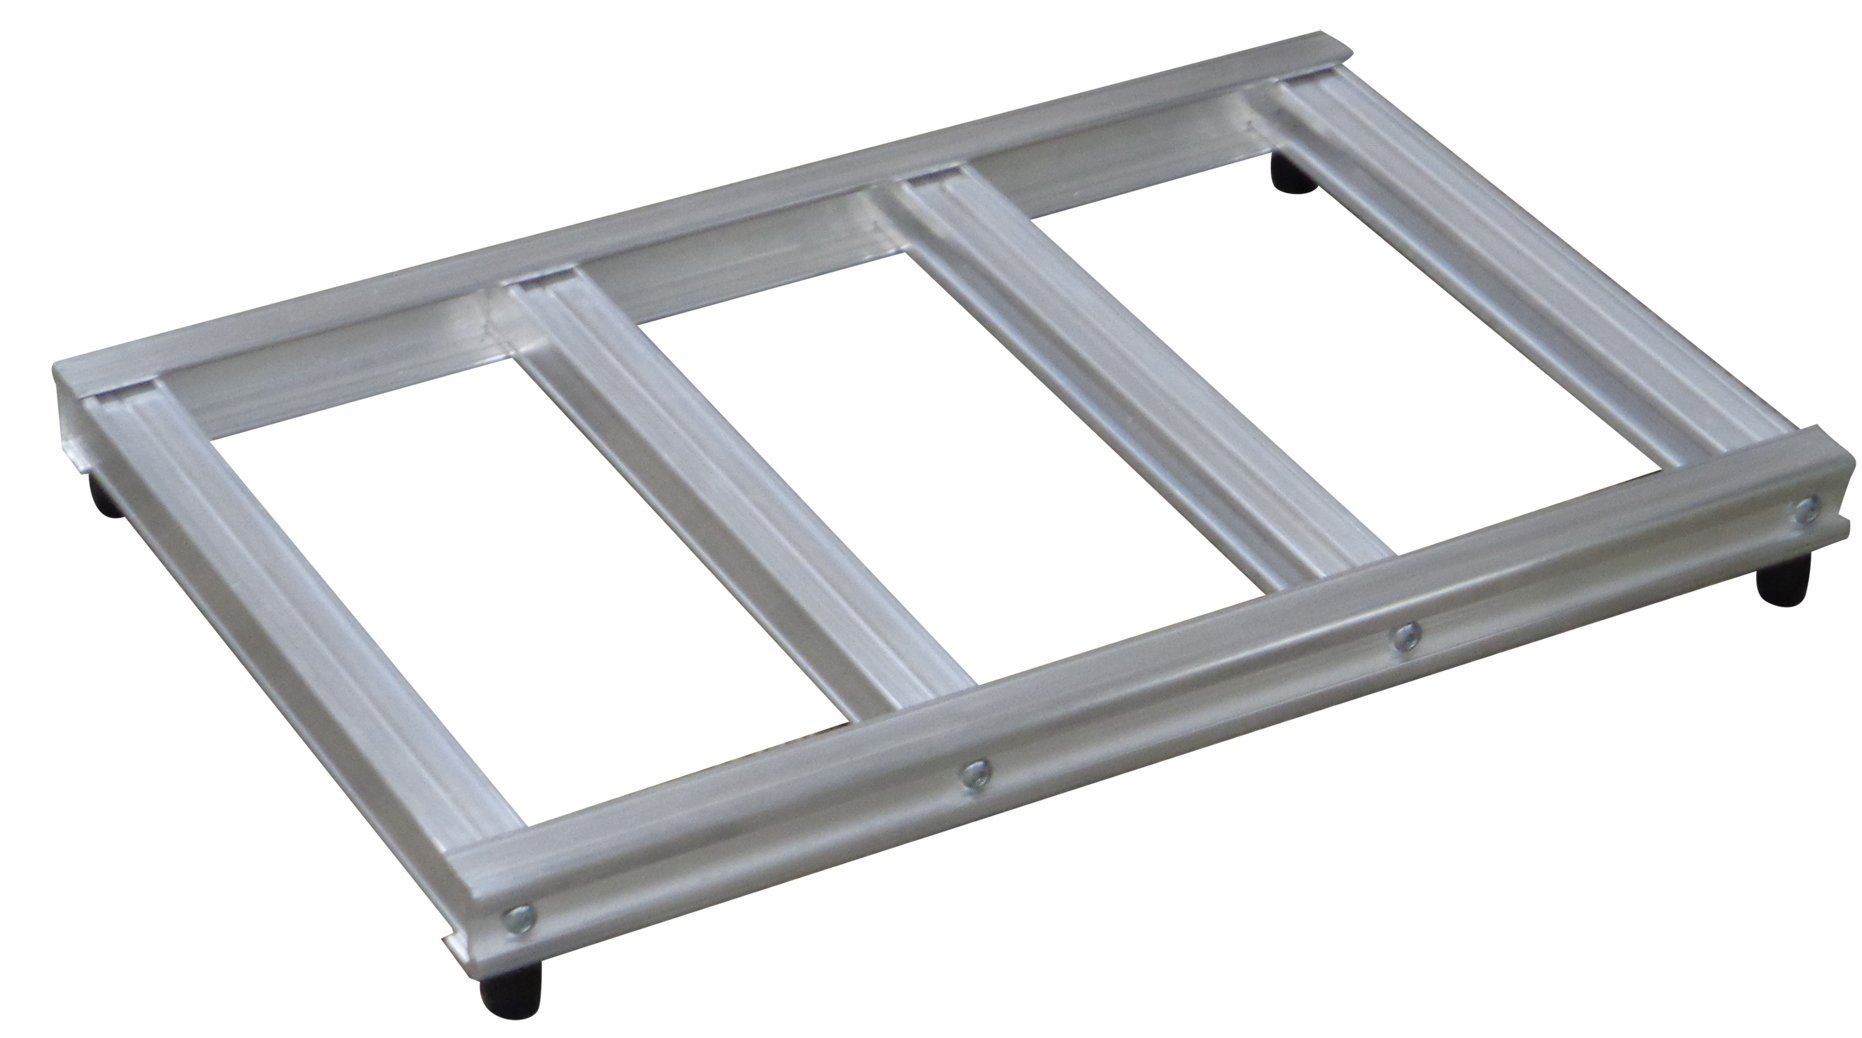 Magliner 303211 Mini Pallet for Hand Truck, Aluminum, 500 lb. Capacity, 20 Wide Opening, 500 fl. oz. Capacity, 15'' Length, 23'' Width